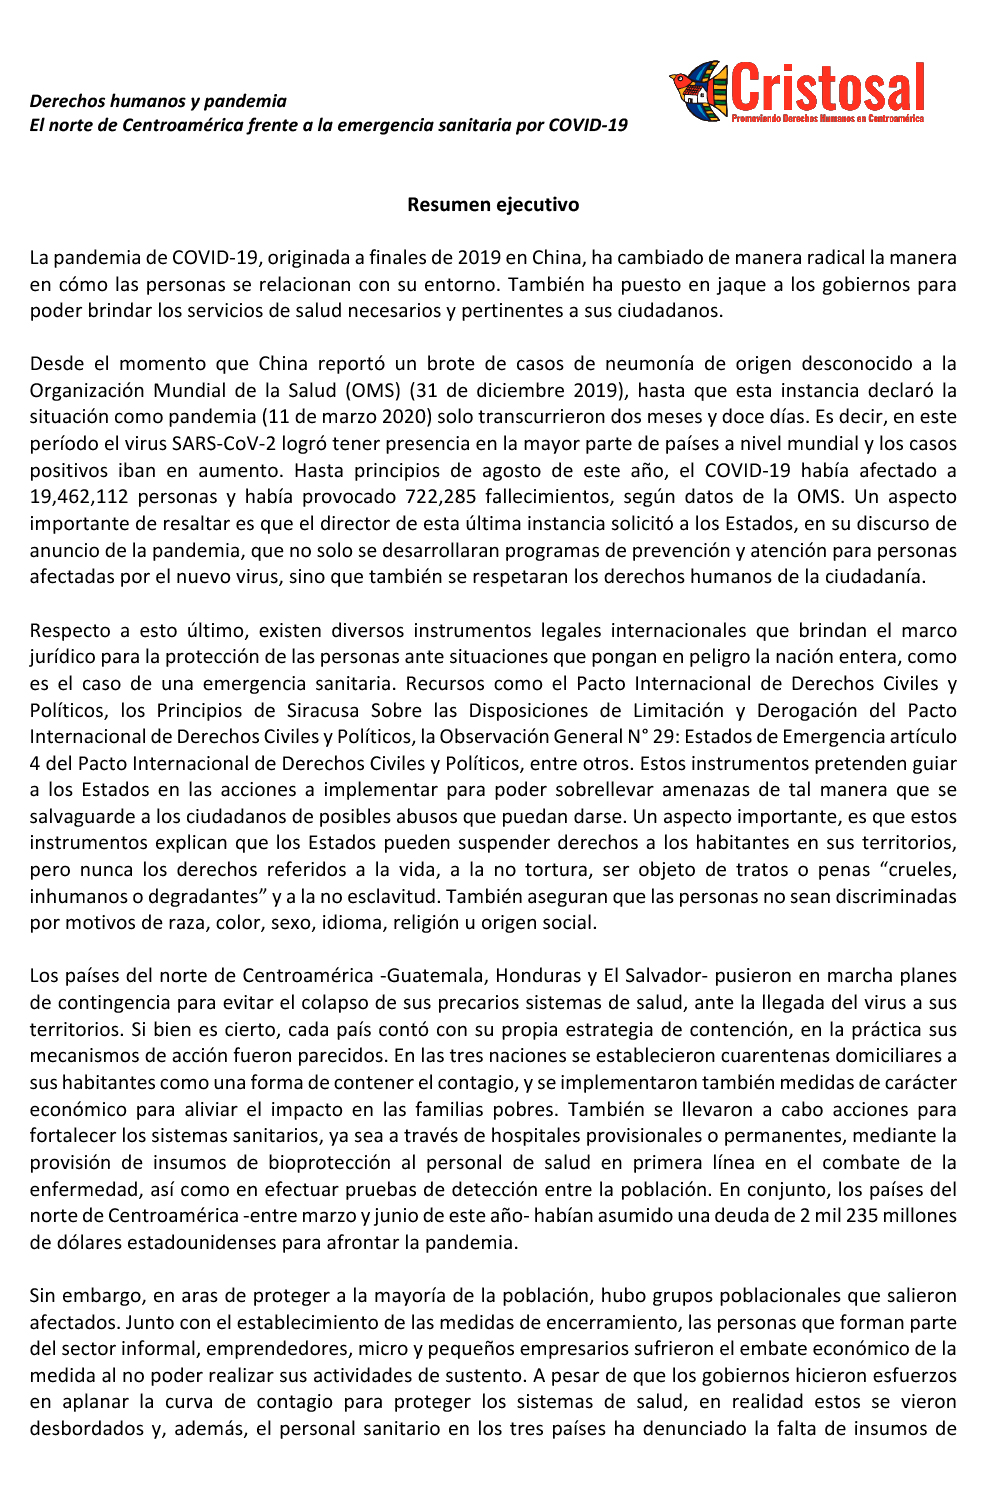 SUMMARY: HUMAN RIGHTS AND PANDEMIC (Spanish)